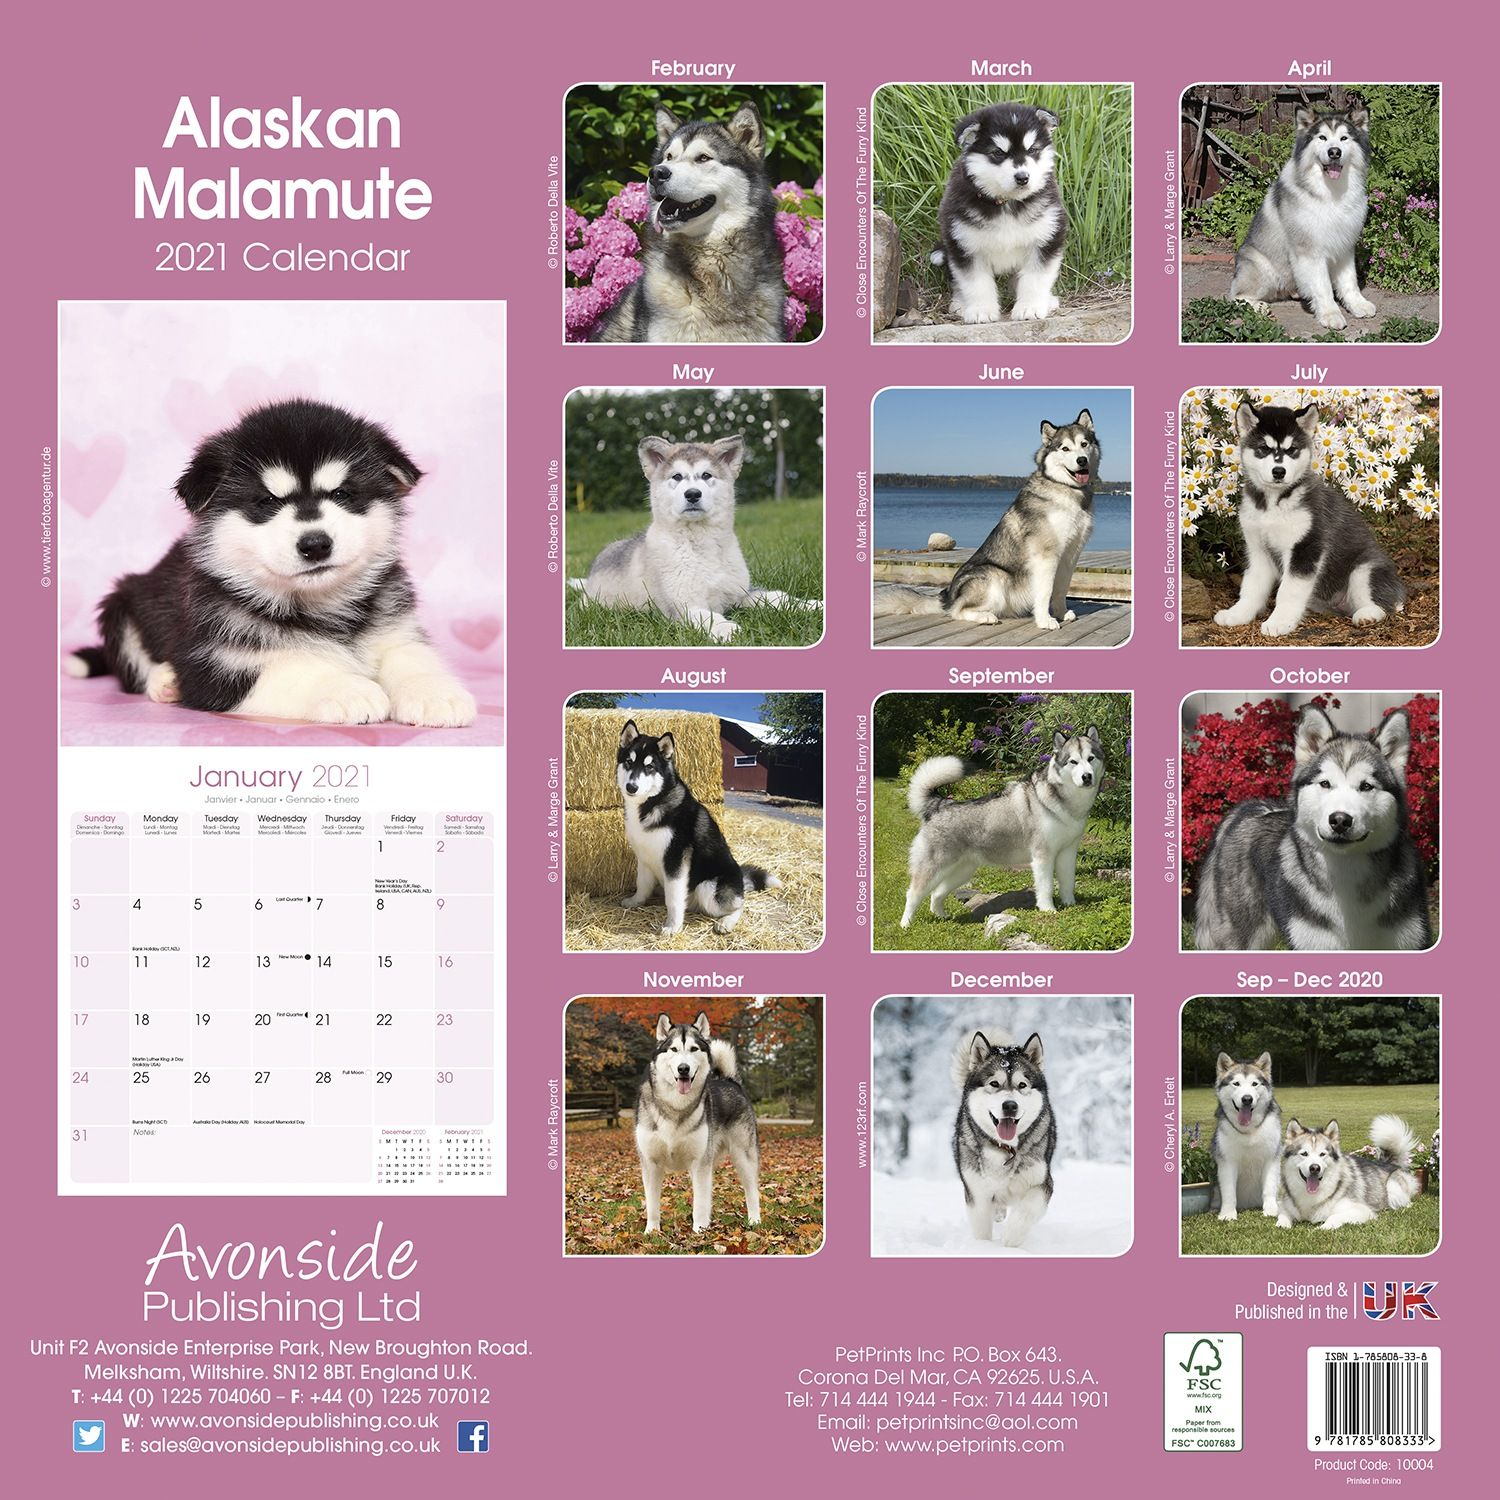 Life With Malamutes Calendar – 16,445 likes · 35,120 talking about this.